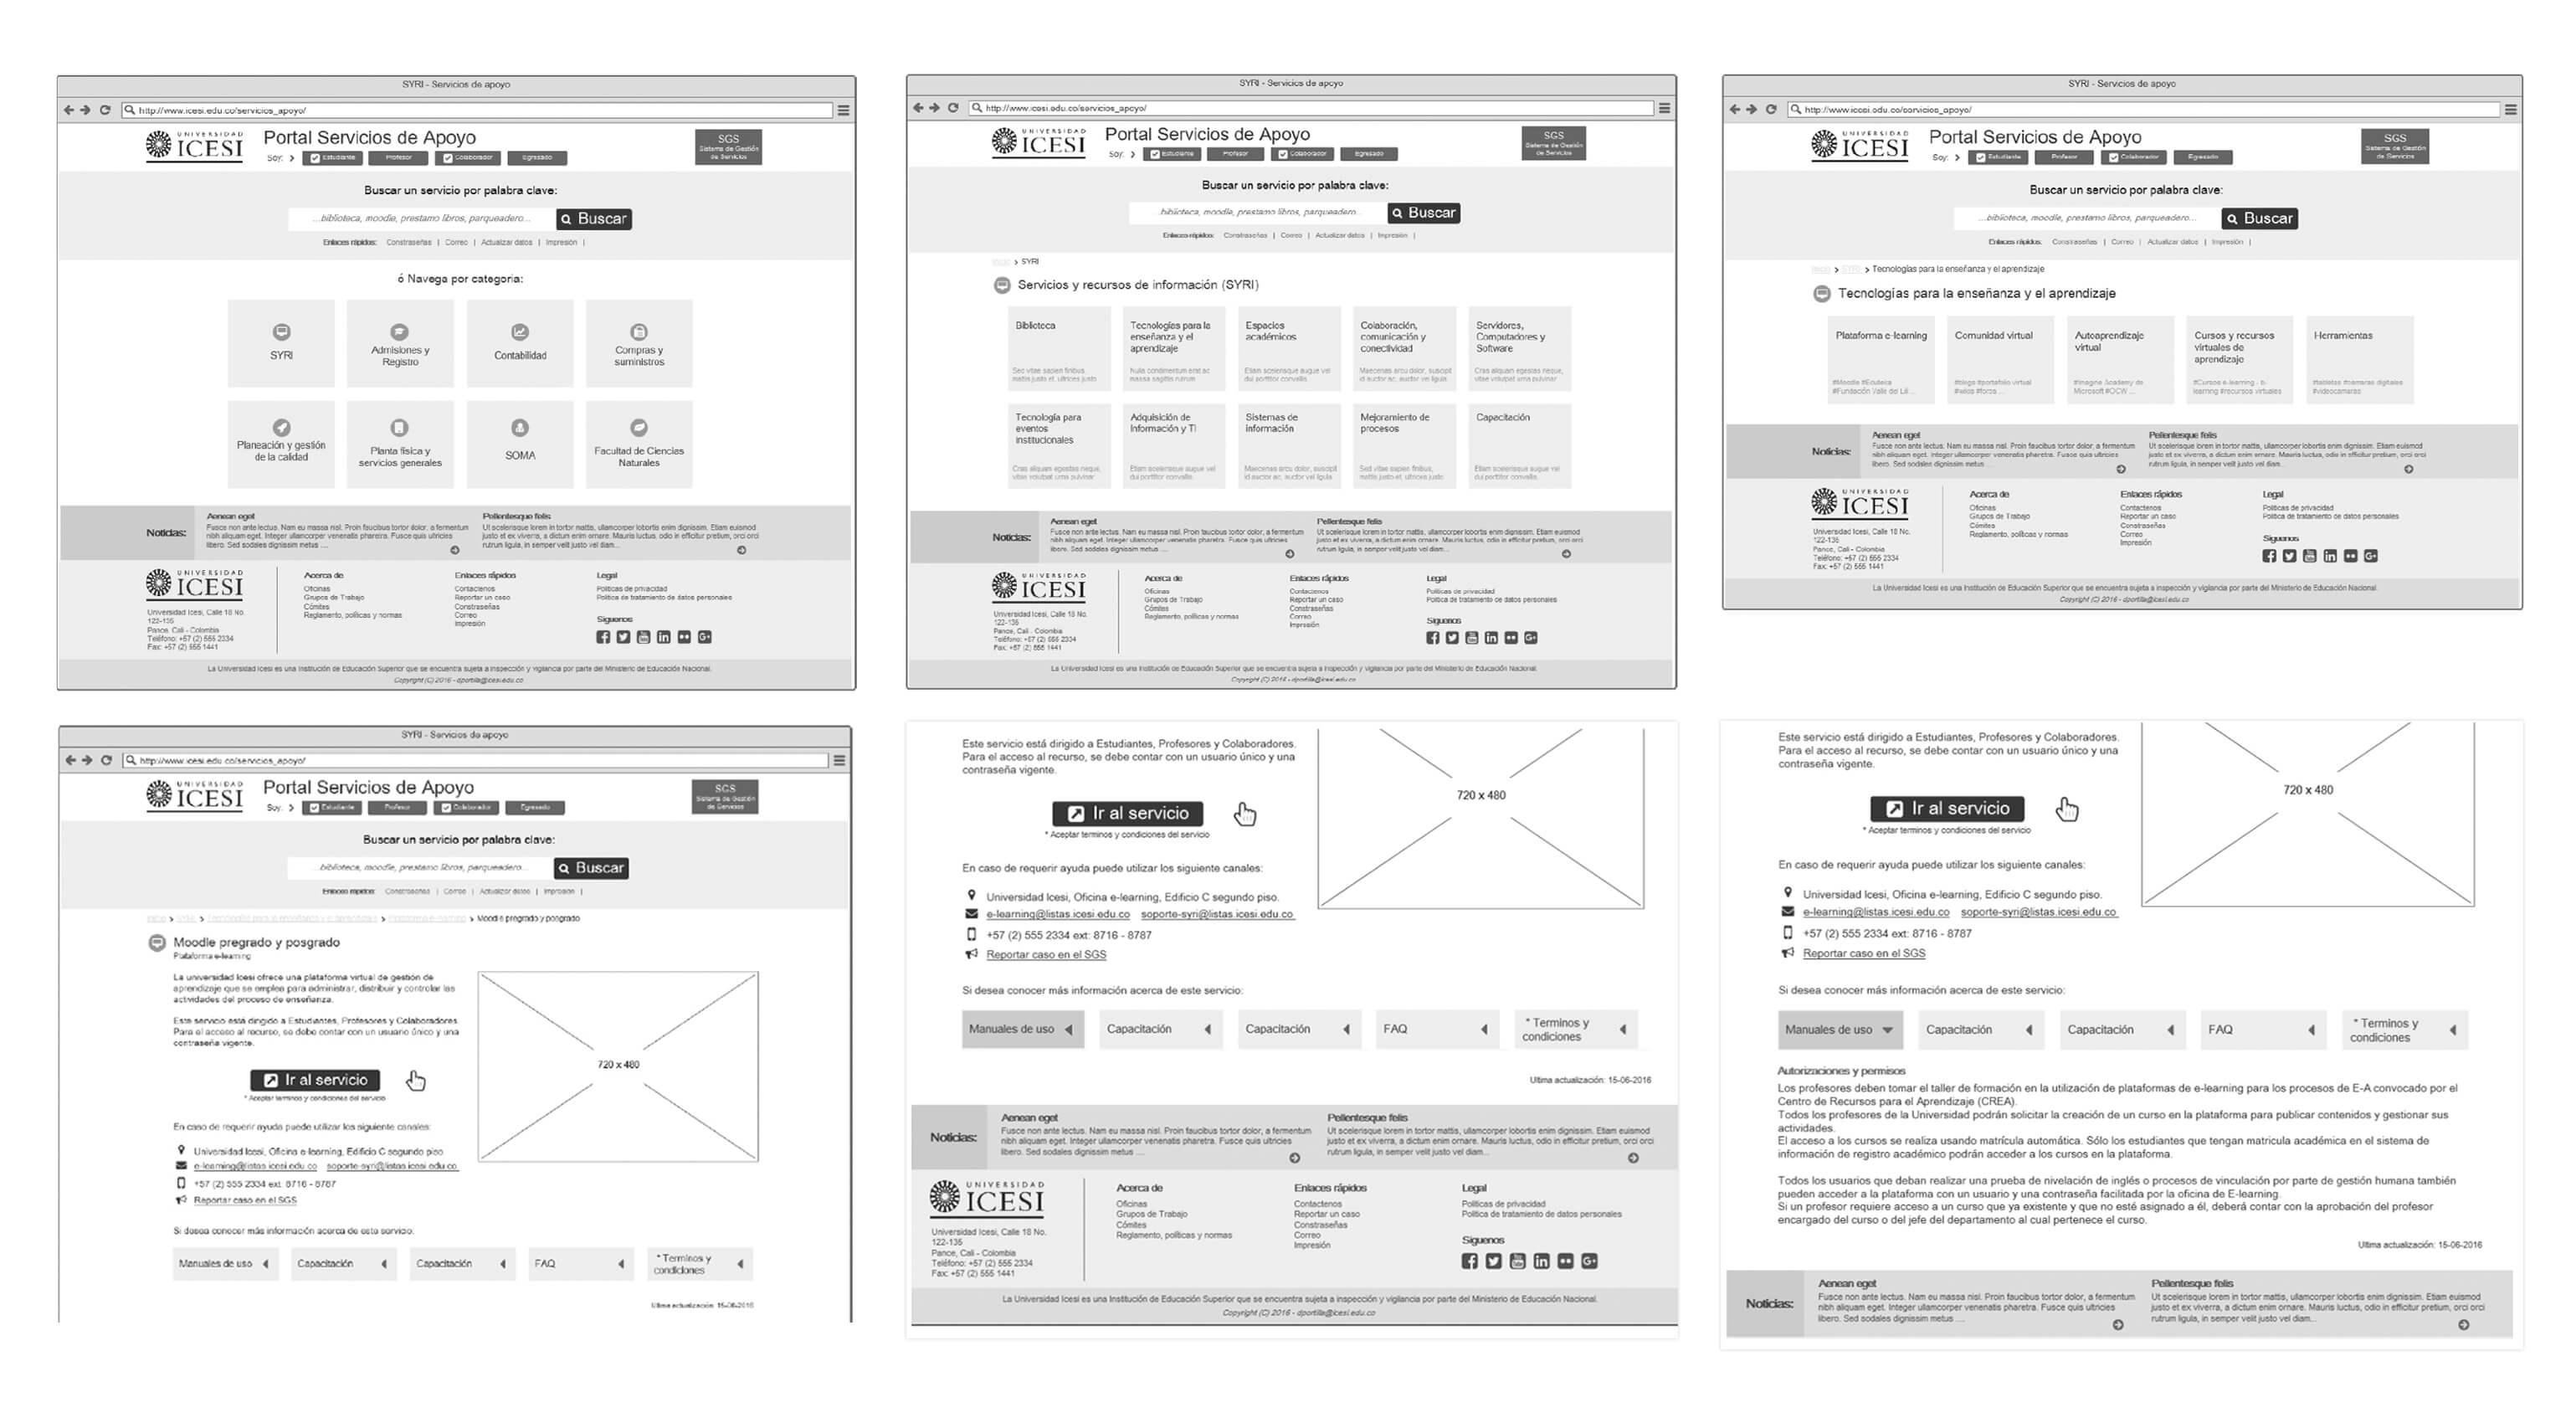 icesi-portal-of-services-wireframes-v2